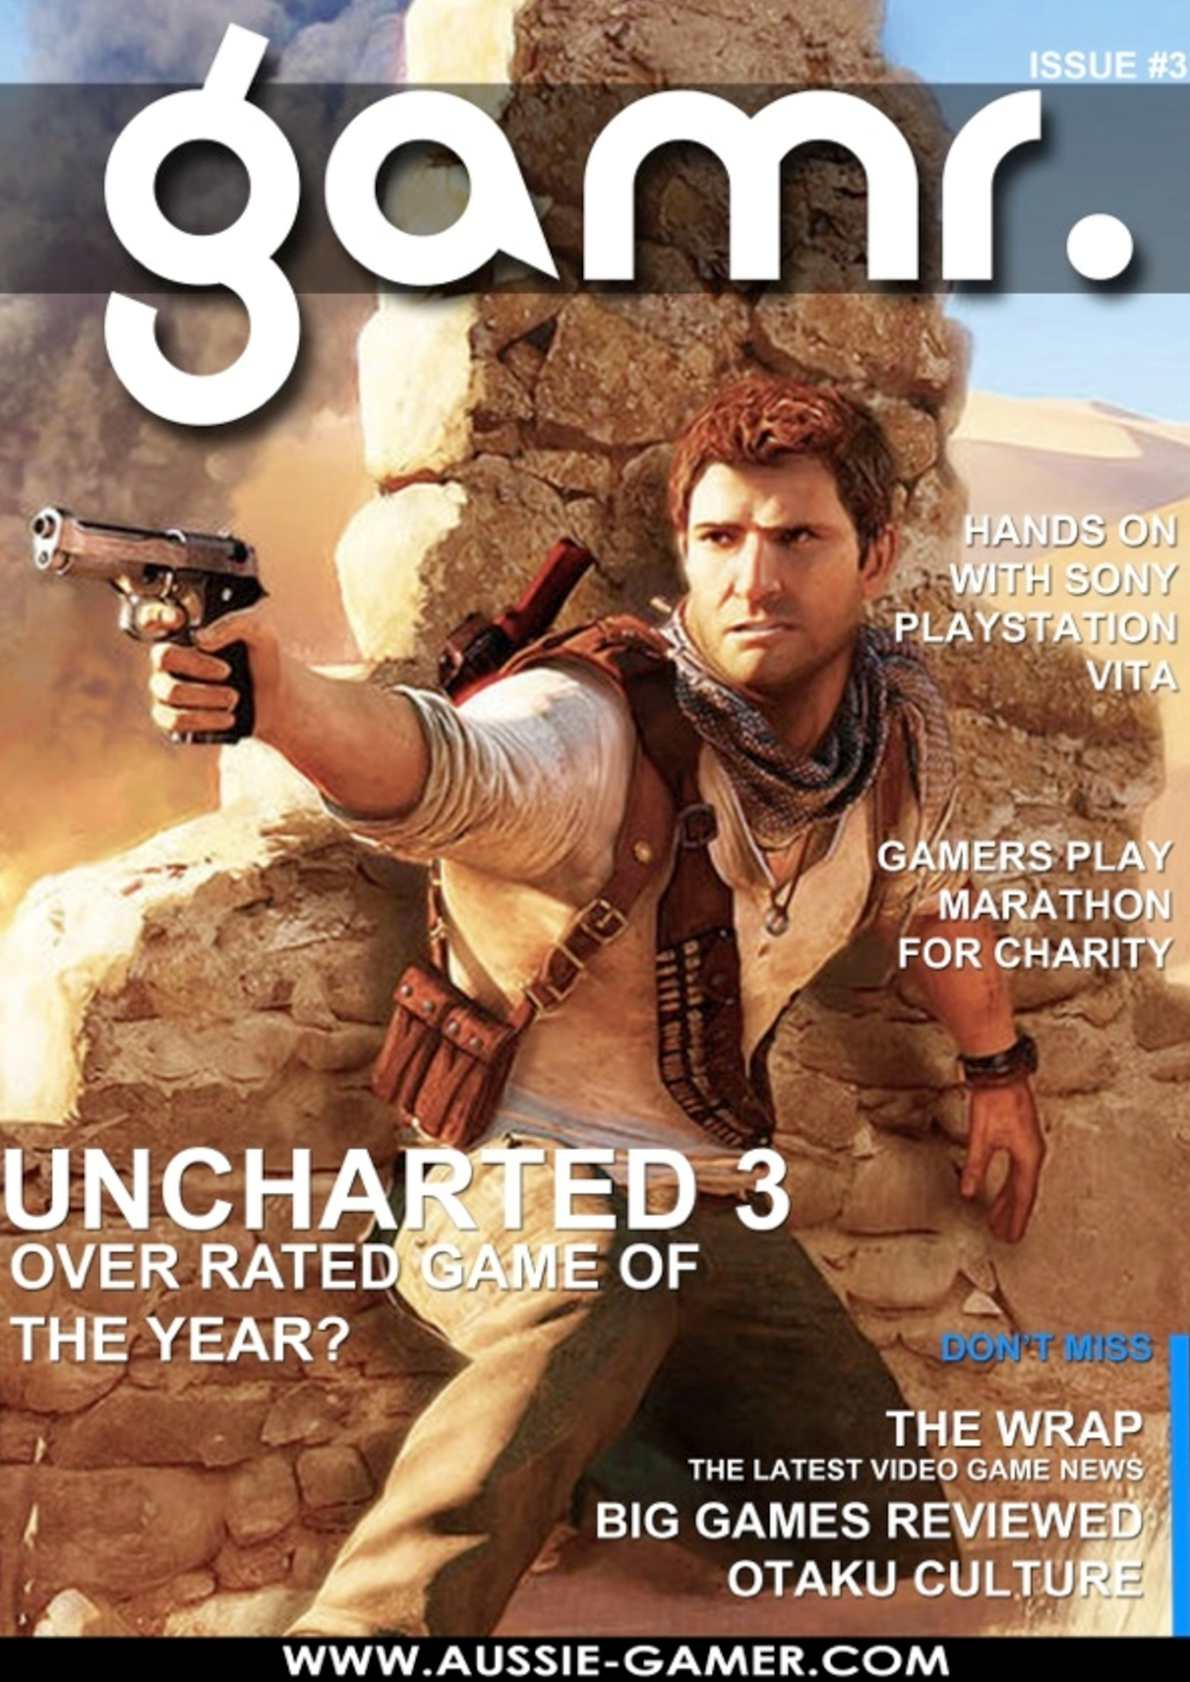 Calameo Gamr Issue 3 Is Uncharted 3 The Over Rated Game Of